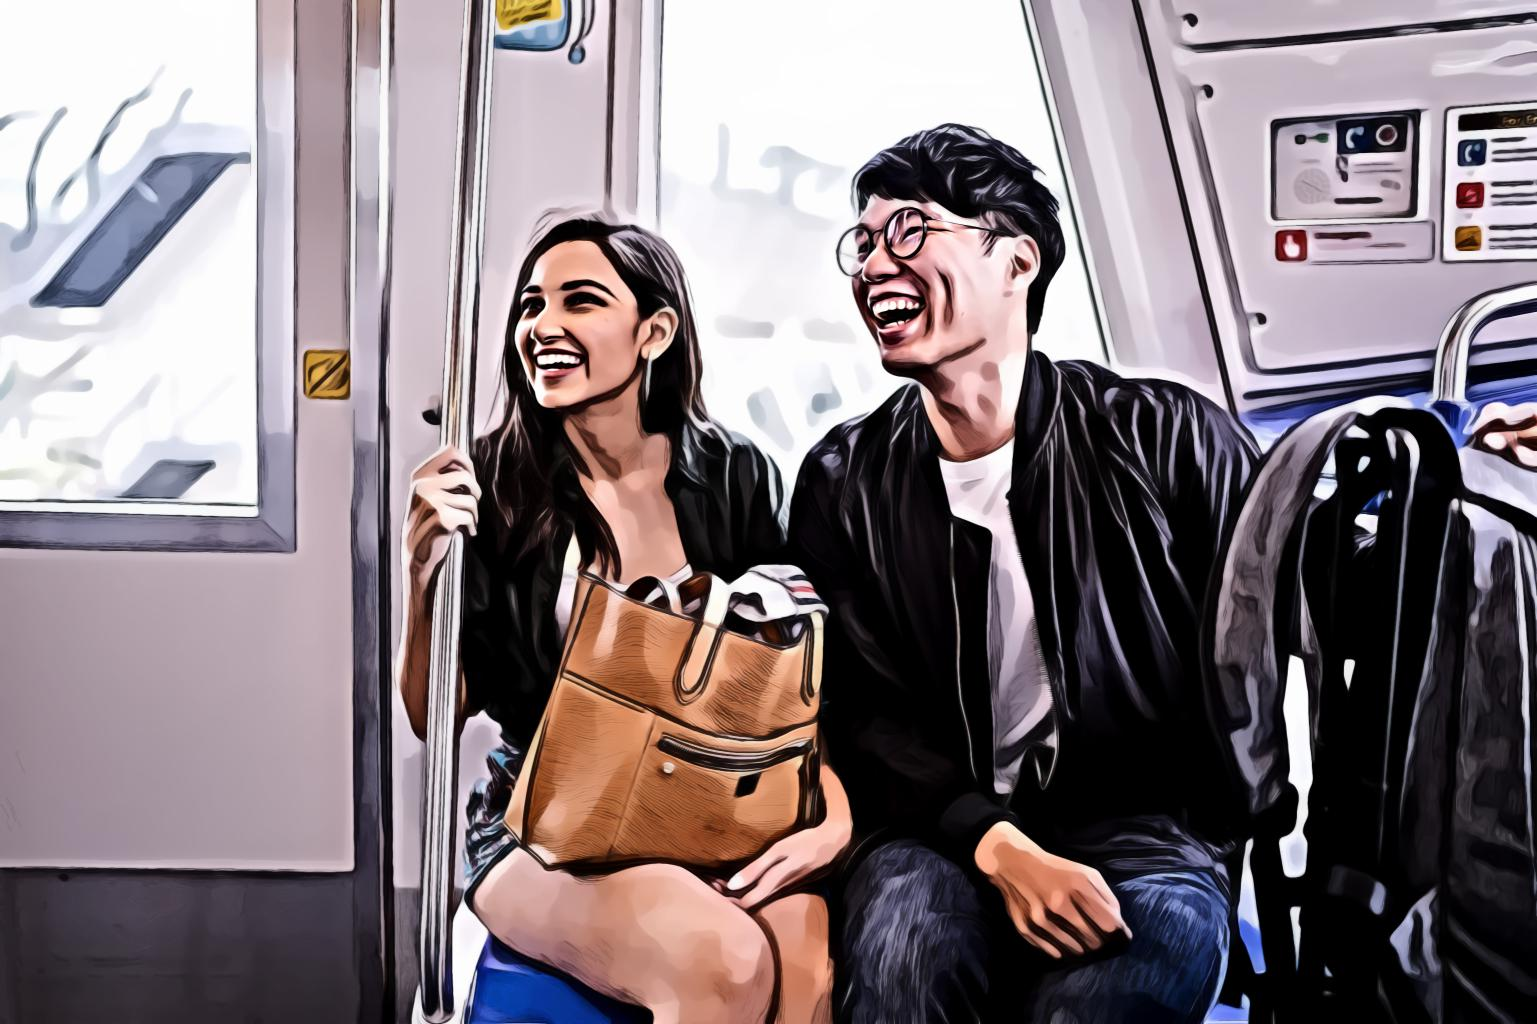 Smiling woman and man inside train